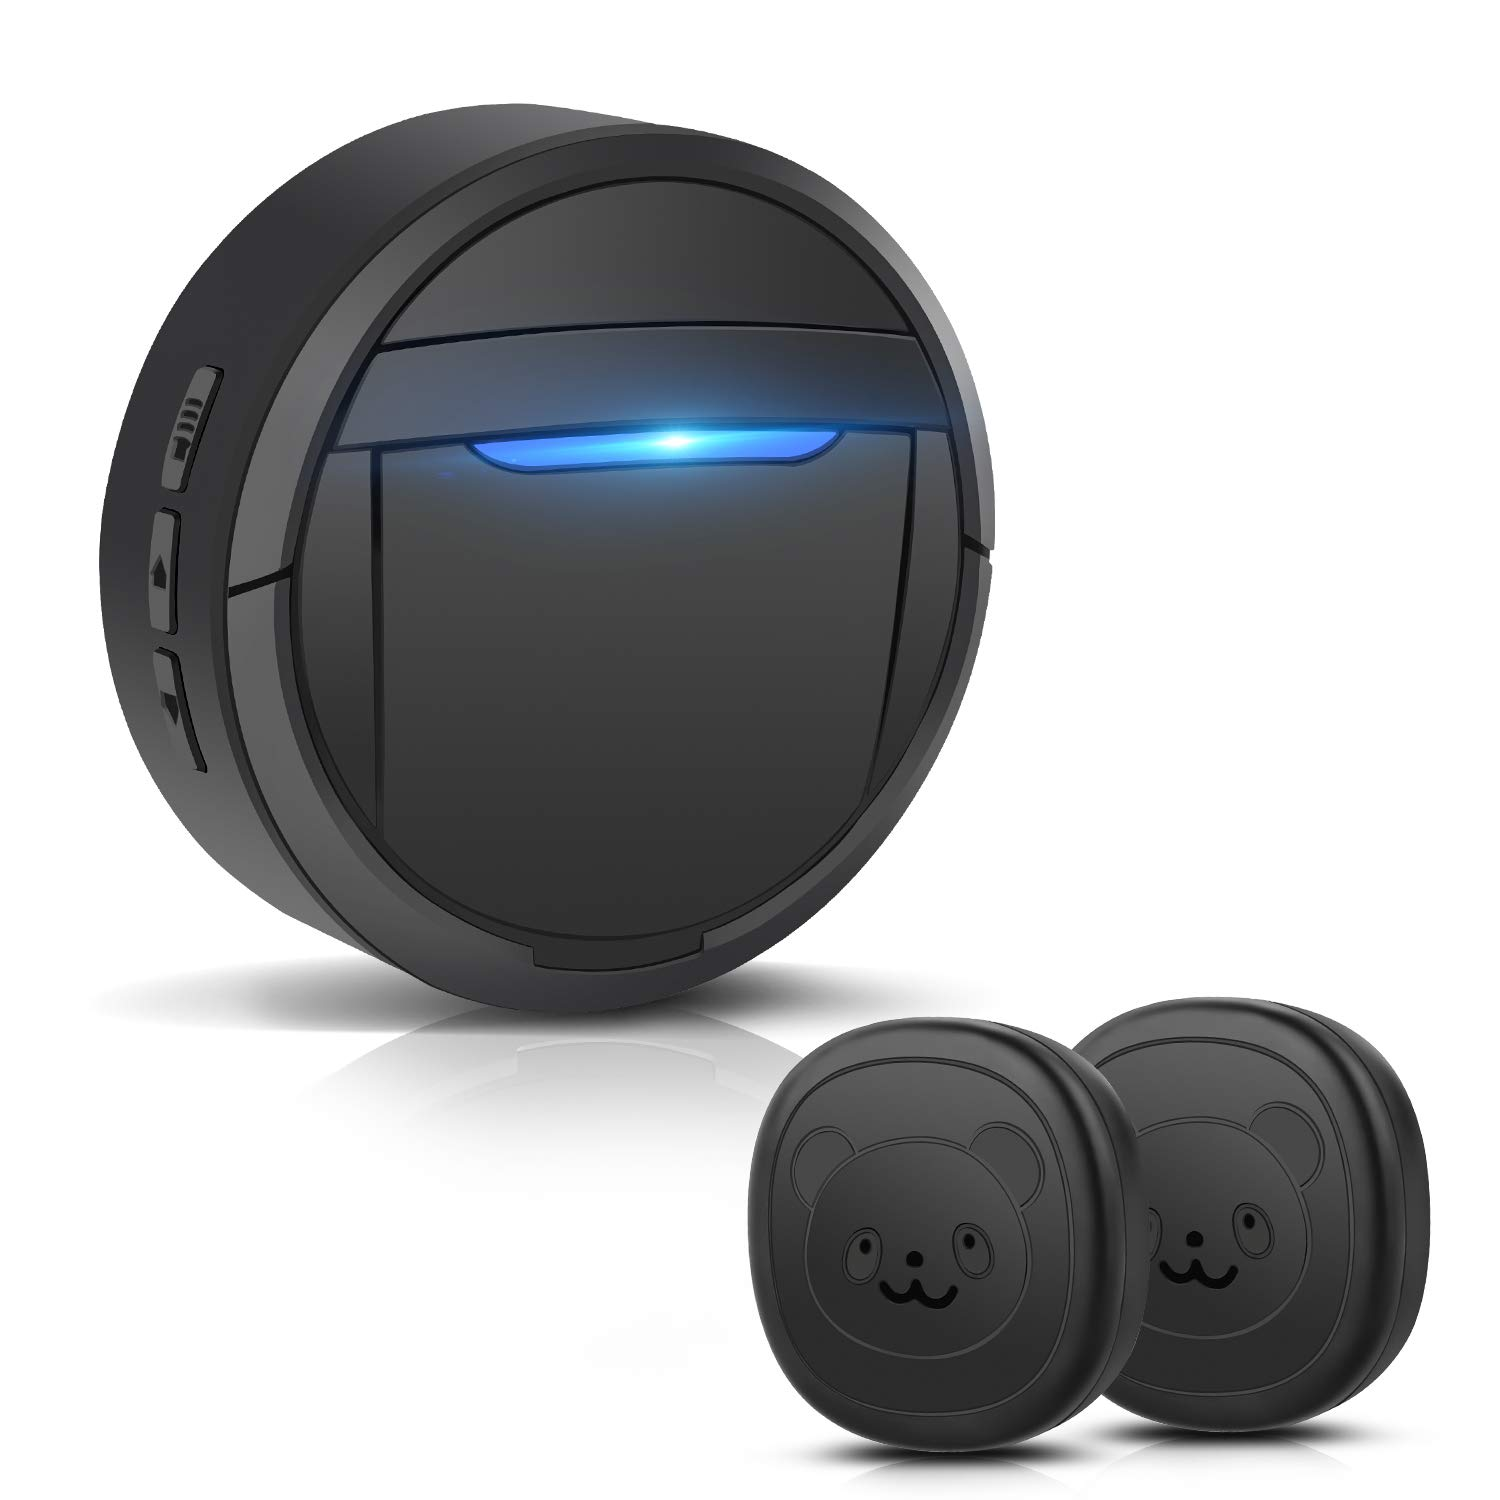 Dinkung Dog Doorbells with Wireless for Doggie to Ring to Go Outside, Waterproof Dog Doorbell for Potty Training, Black by Dinkung